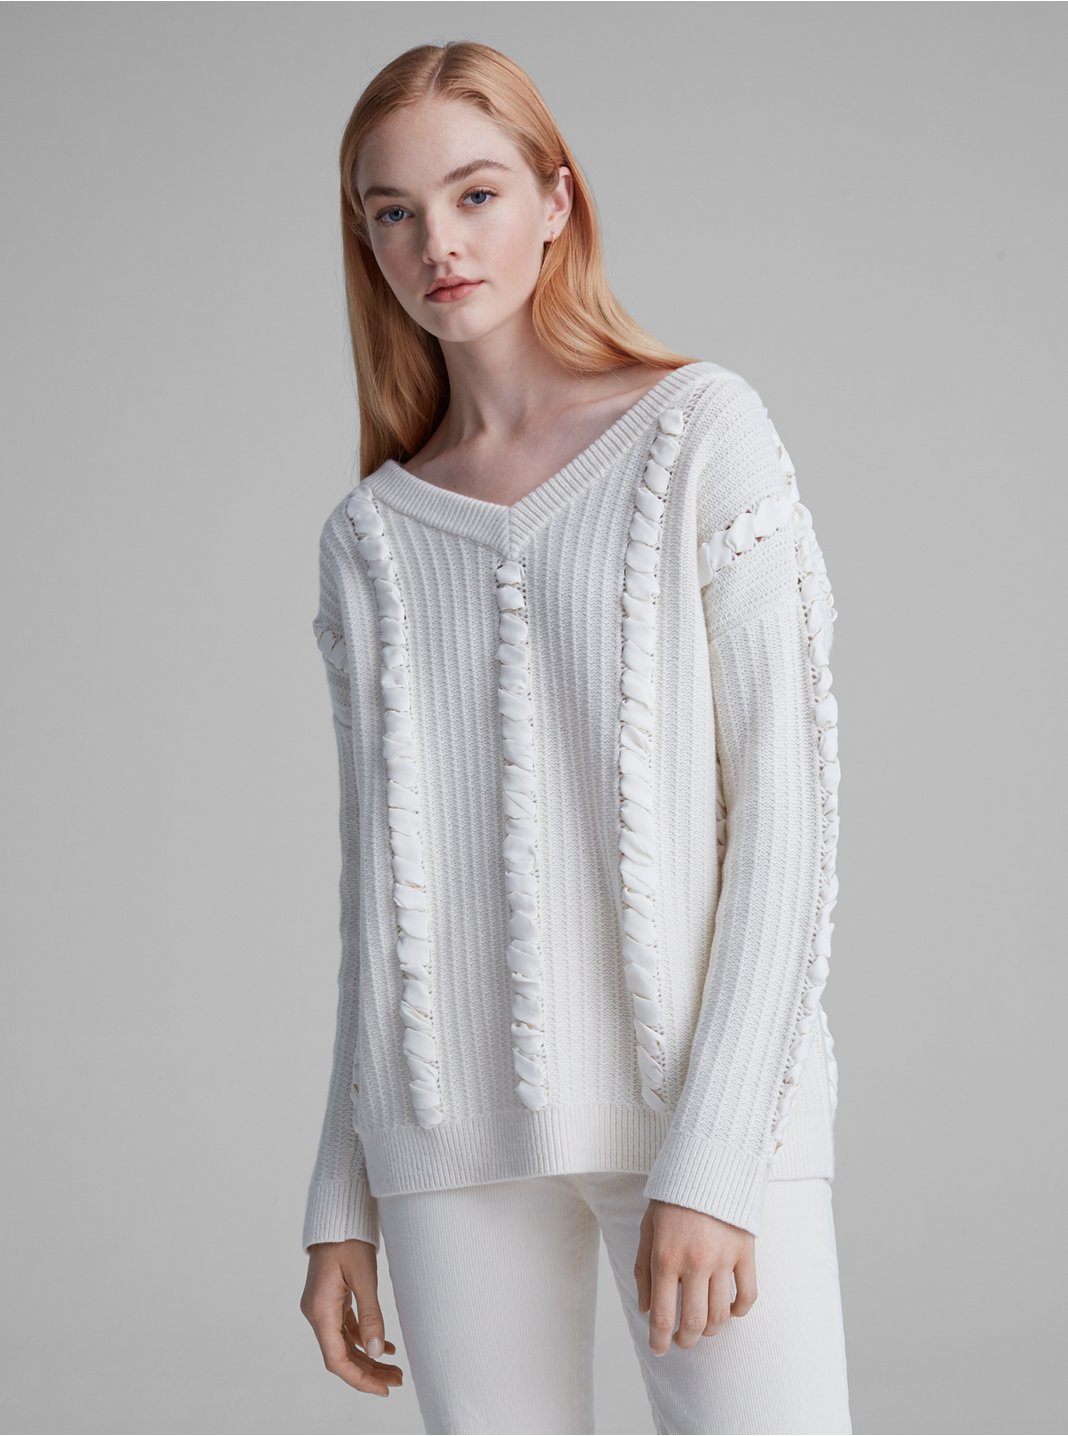 Woven Detail Sweater